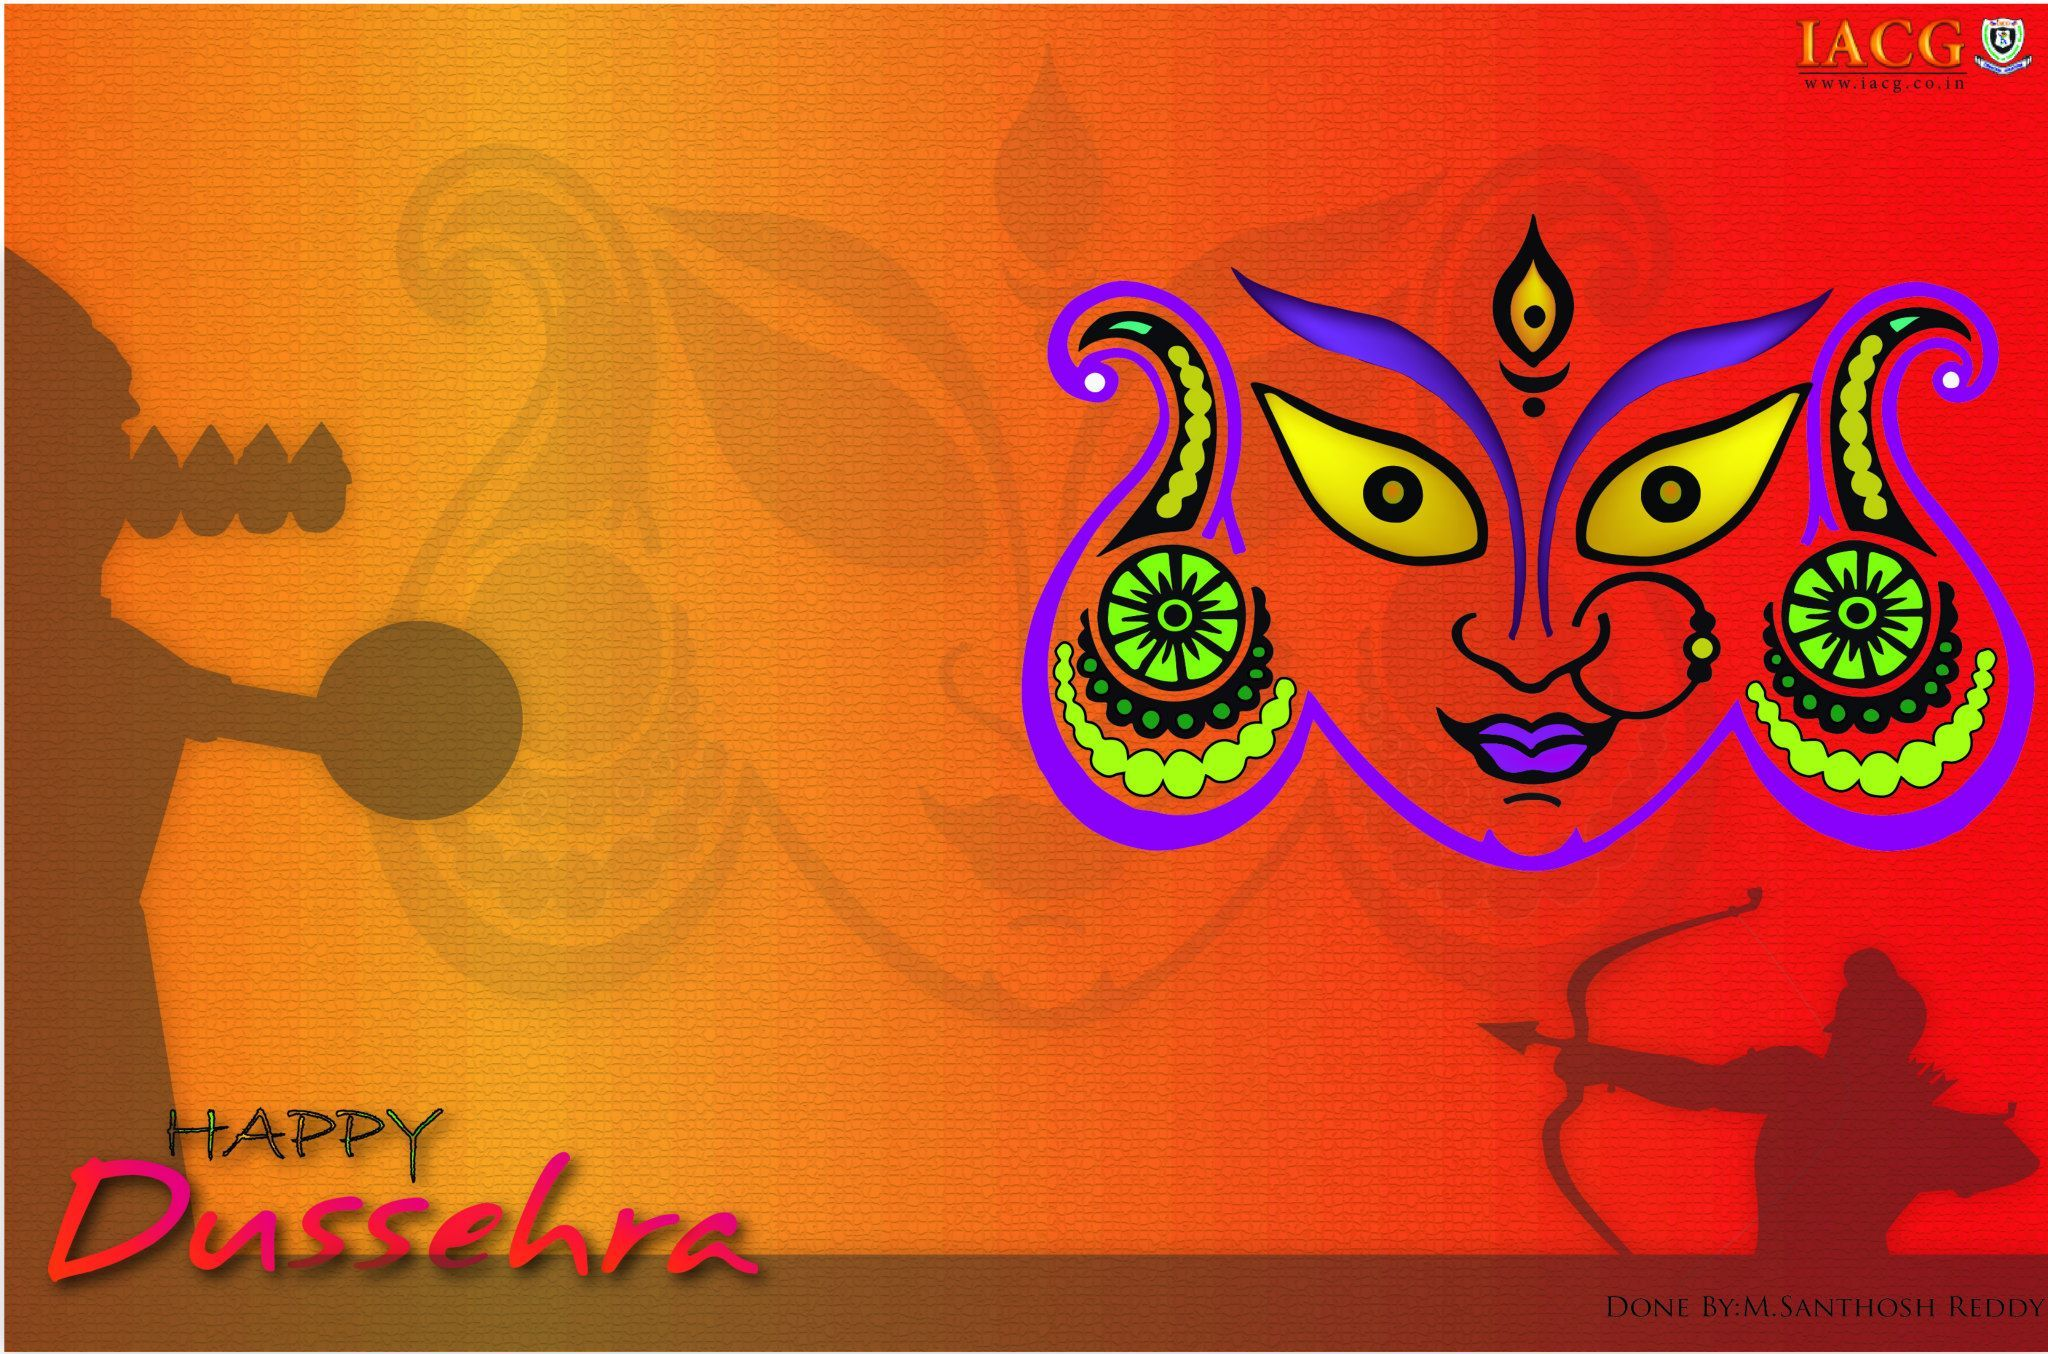 Dussehra greeting cards done by iacg students dusshera greeting dussehra greeting cards done by iacg students dusshera greeting cards done by iacg students pinterest dussehra greetings kristyandbryce Images